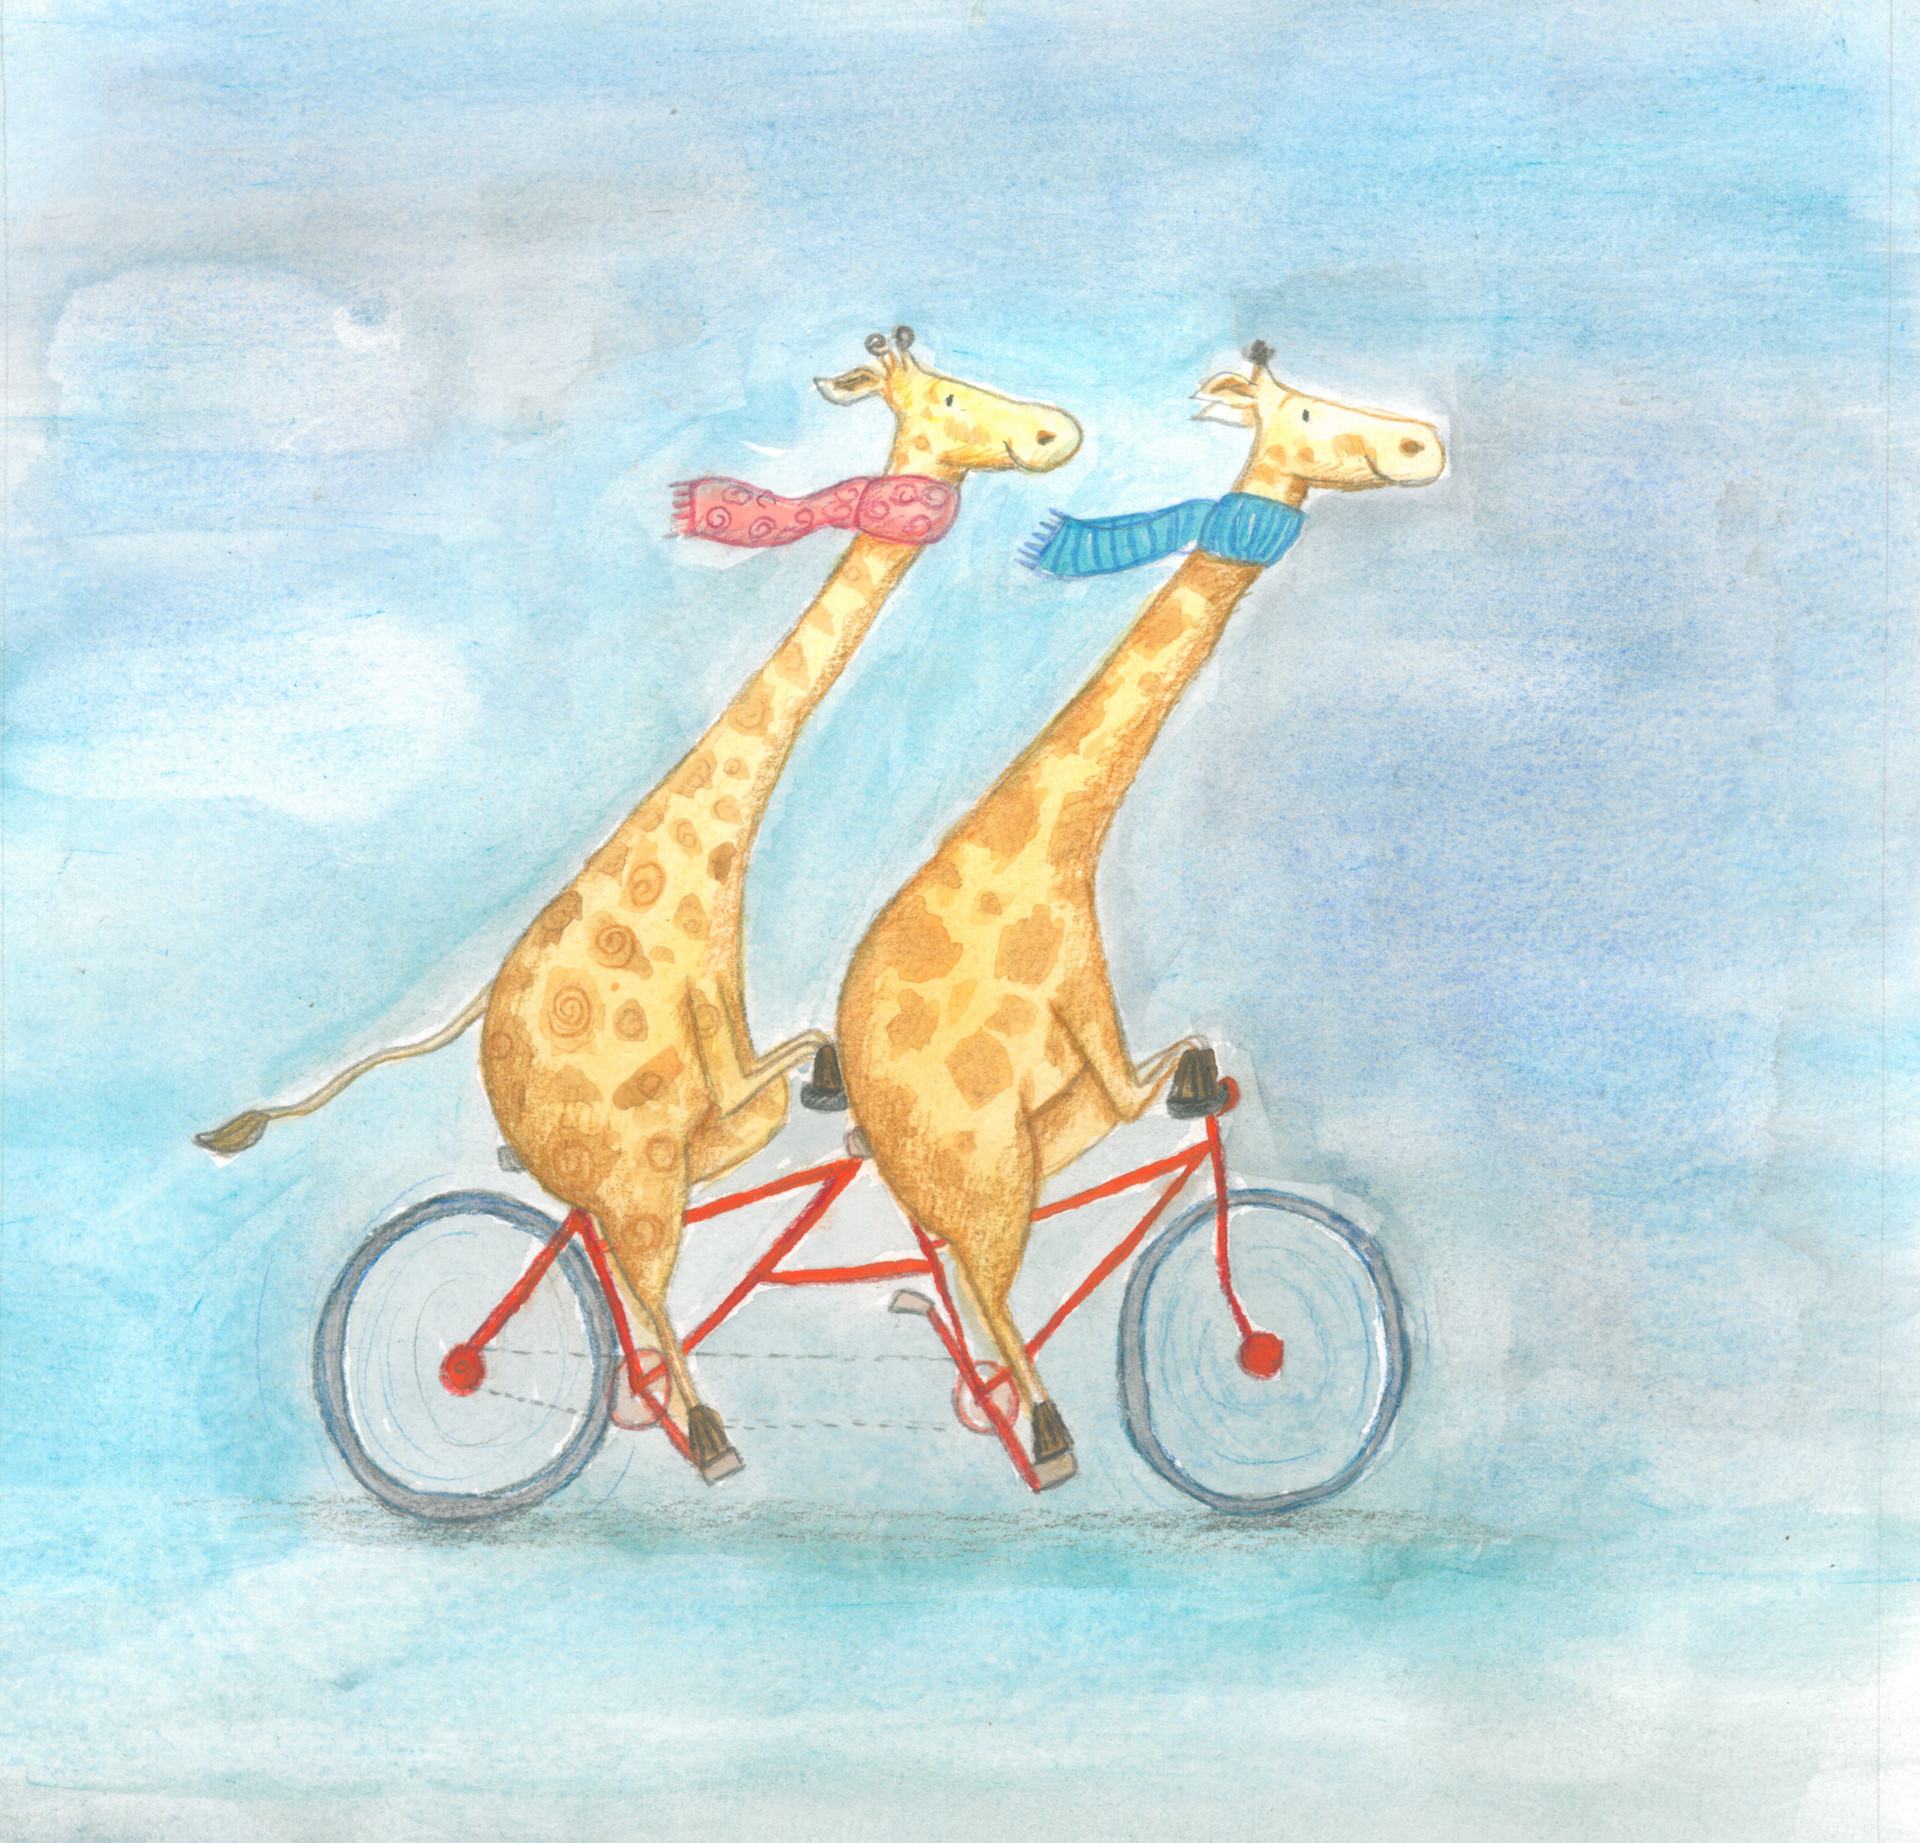 Geoffrey and Glenda love their bike more than anything